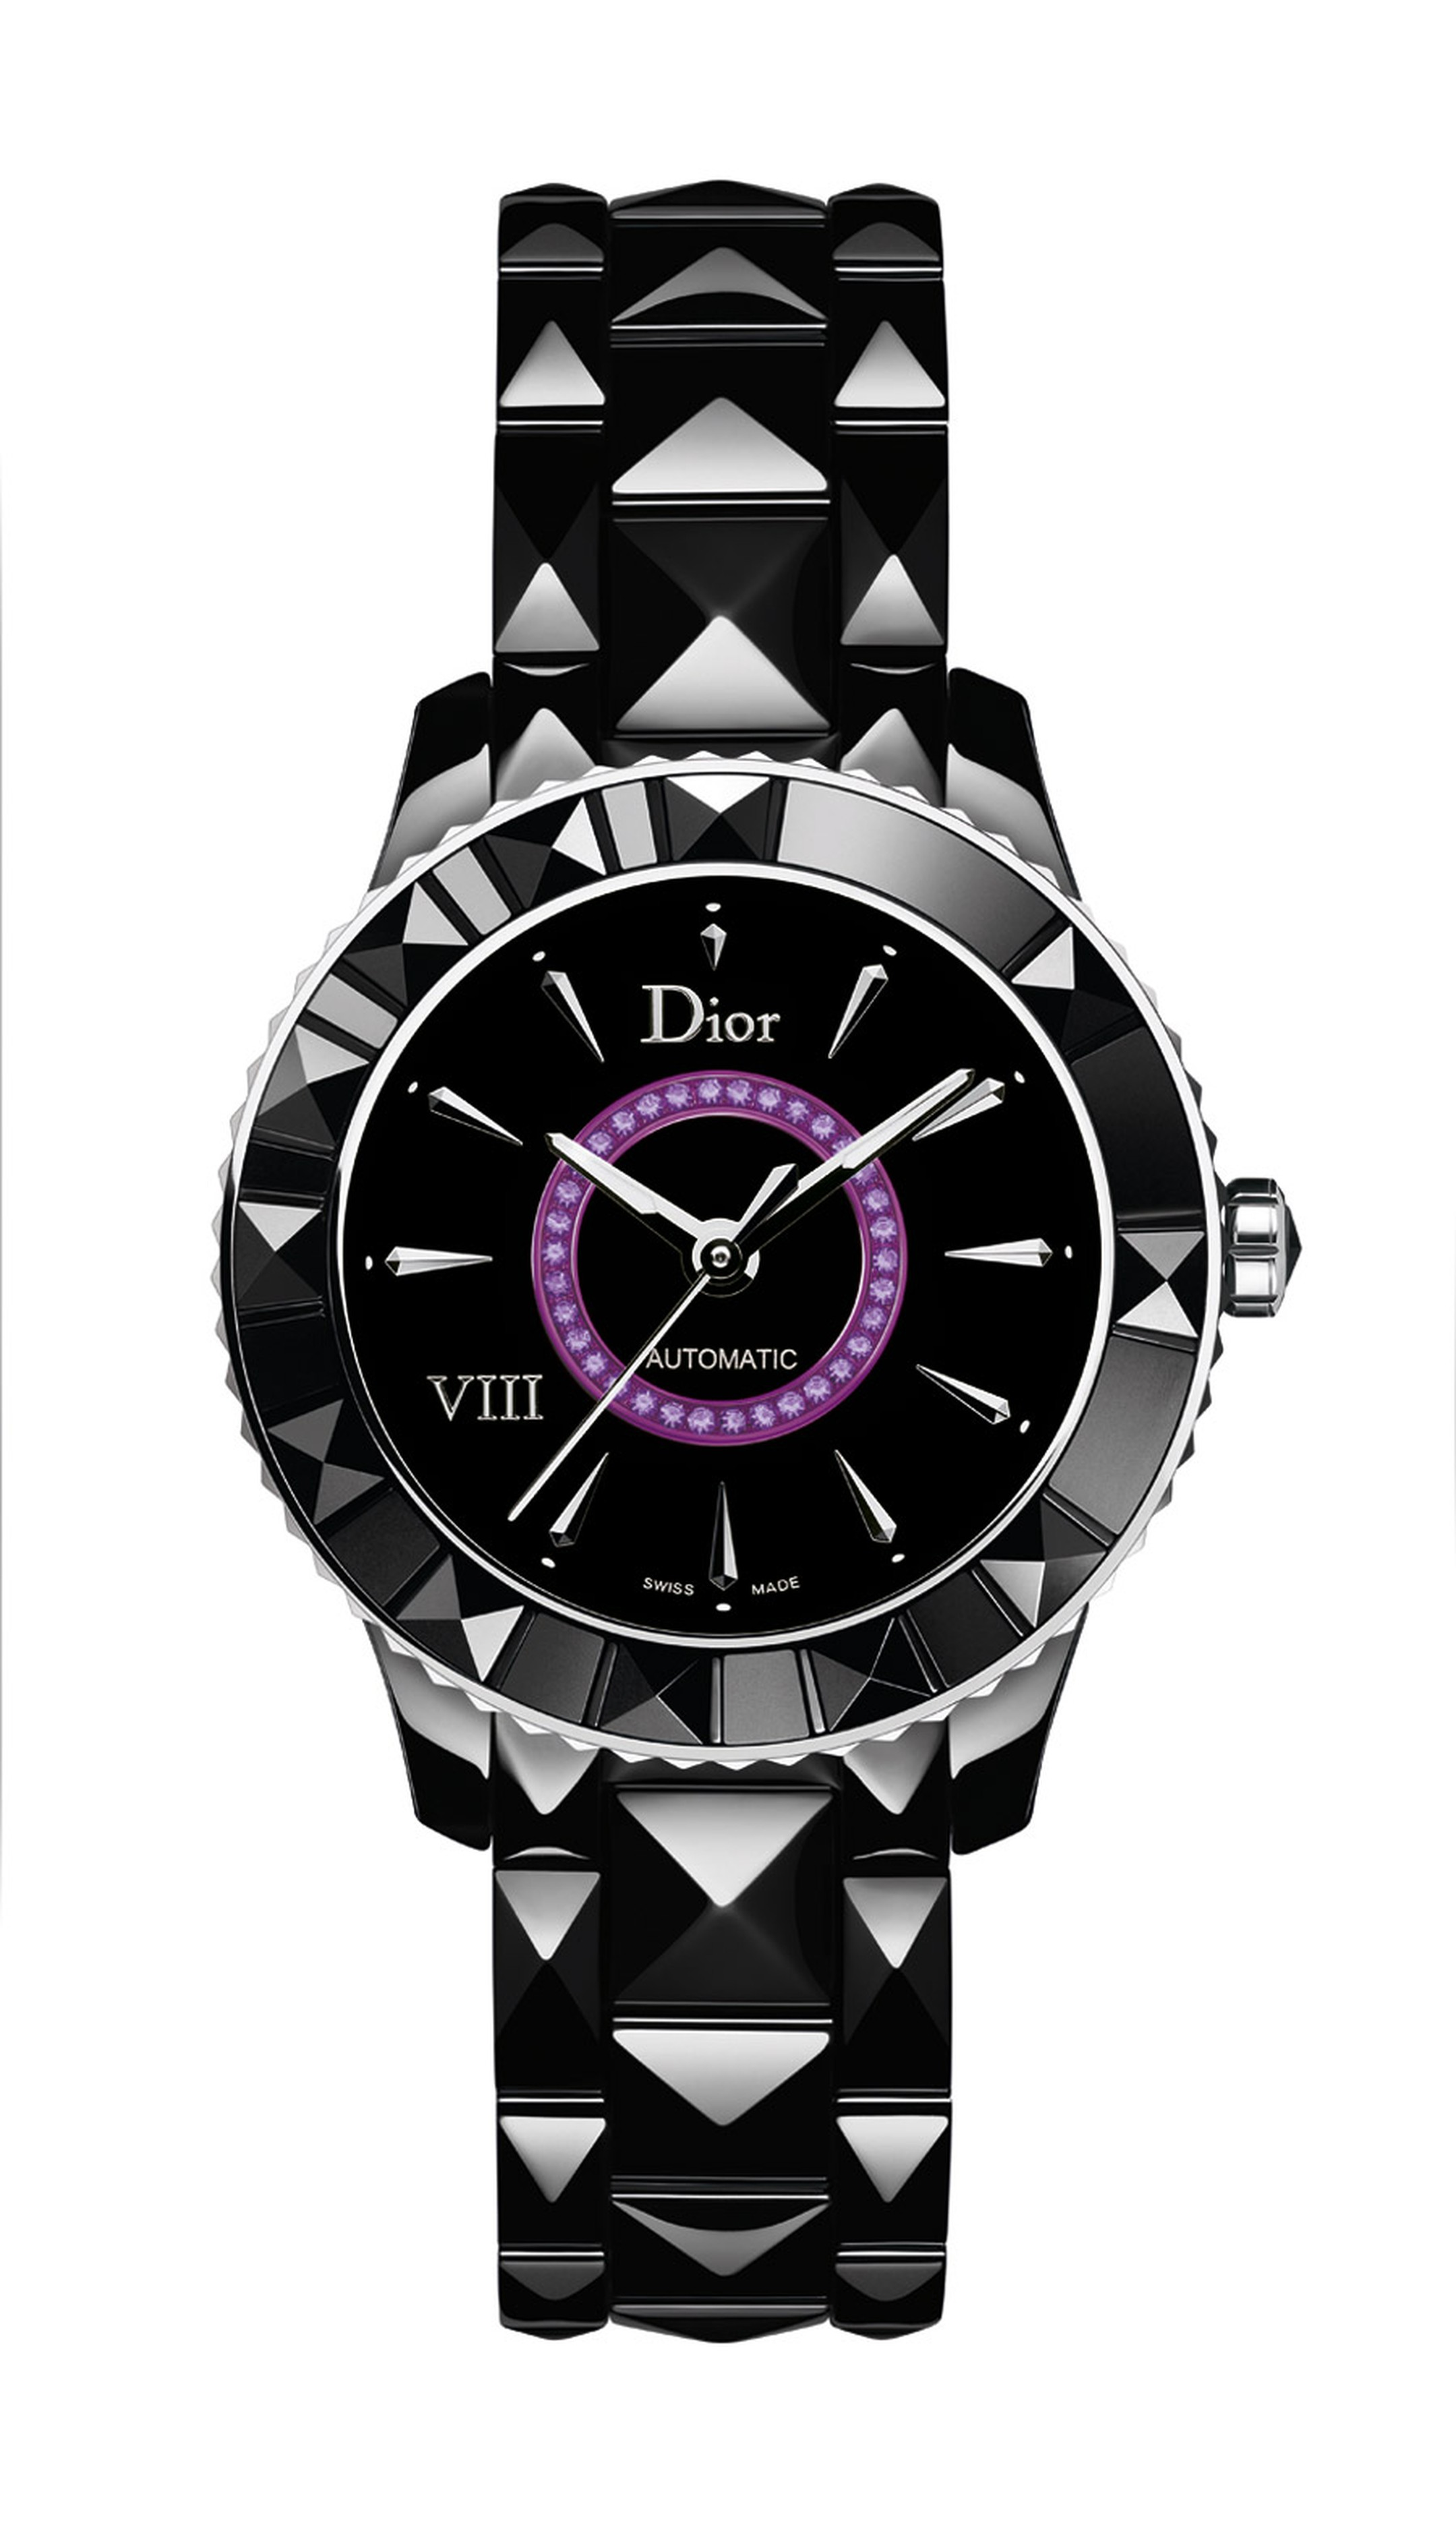 DIOR-VIII-BLACK-AUTO-COLOURED-CIRCLE-DIAL-AMETHYST-38mm